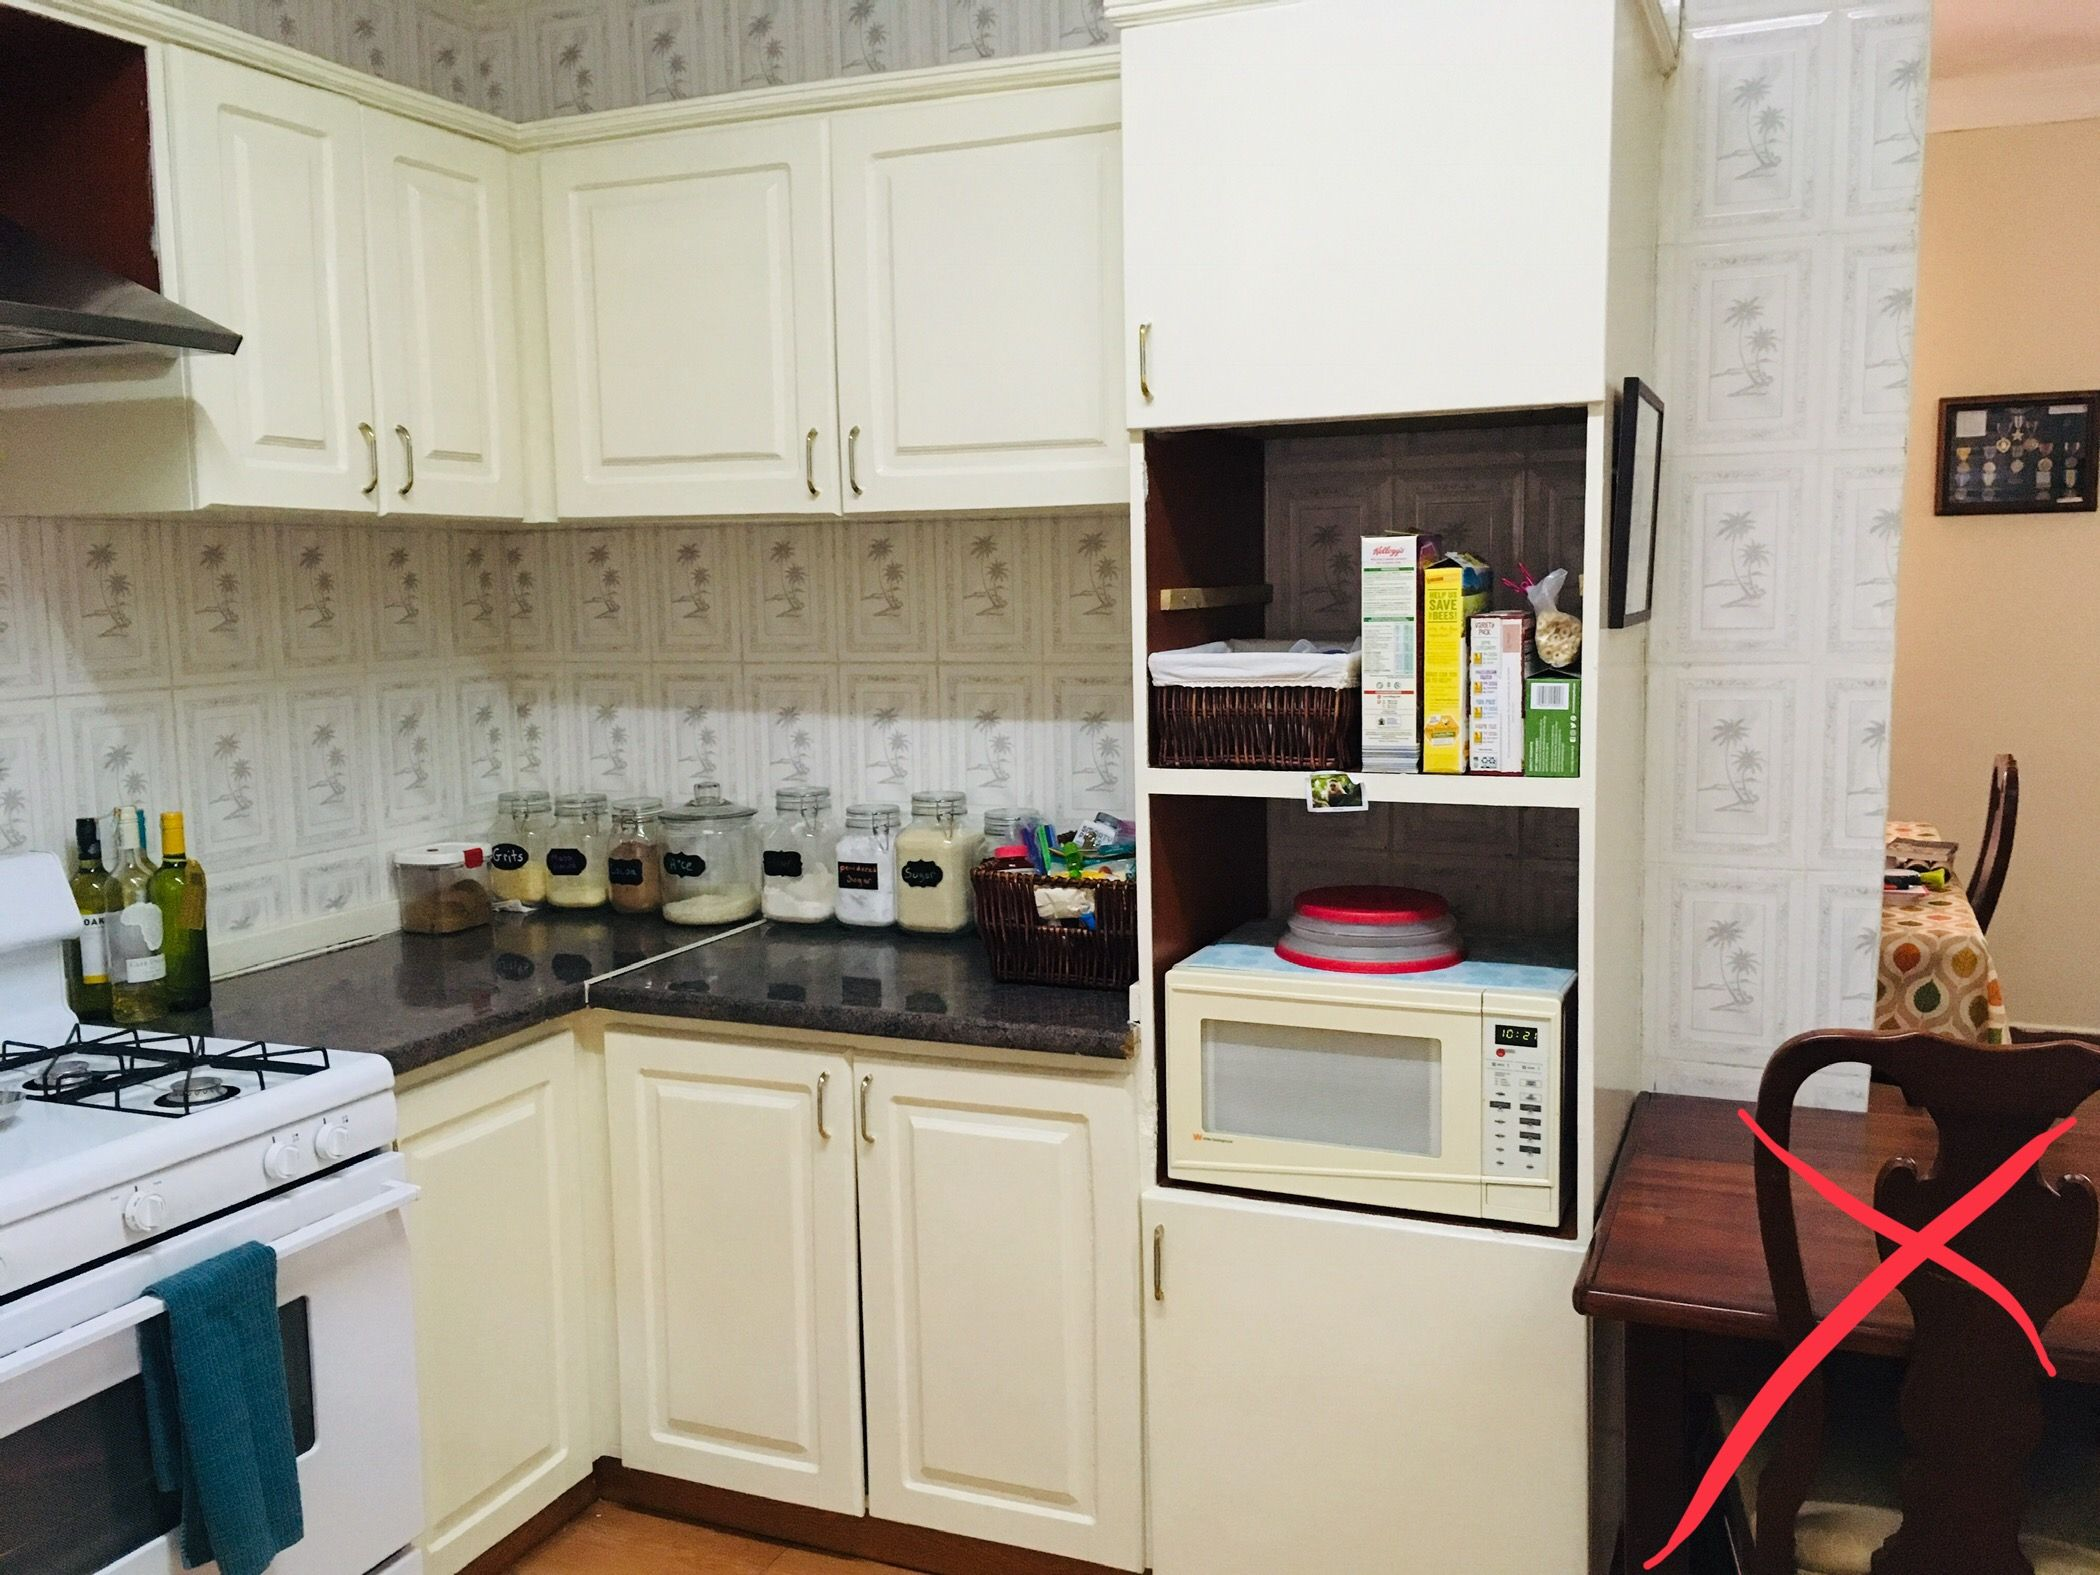 Pin By Rebekah Duvic On Ghana Home Kitchen Cabinets Kitchen Cabinet